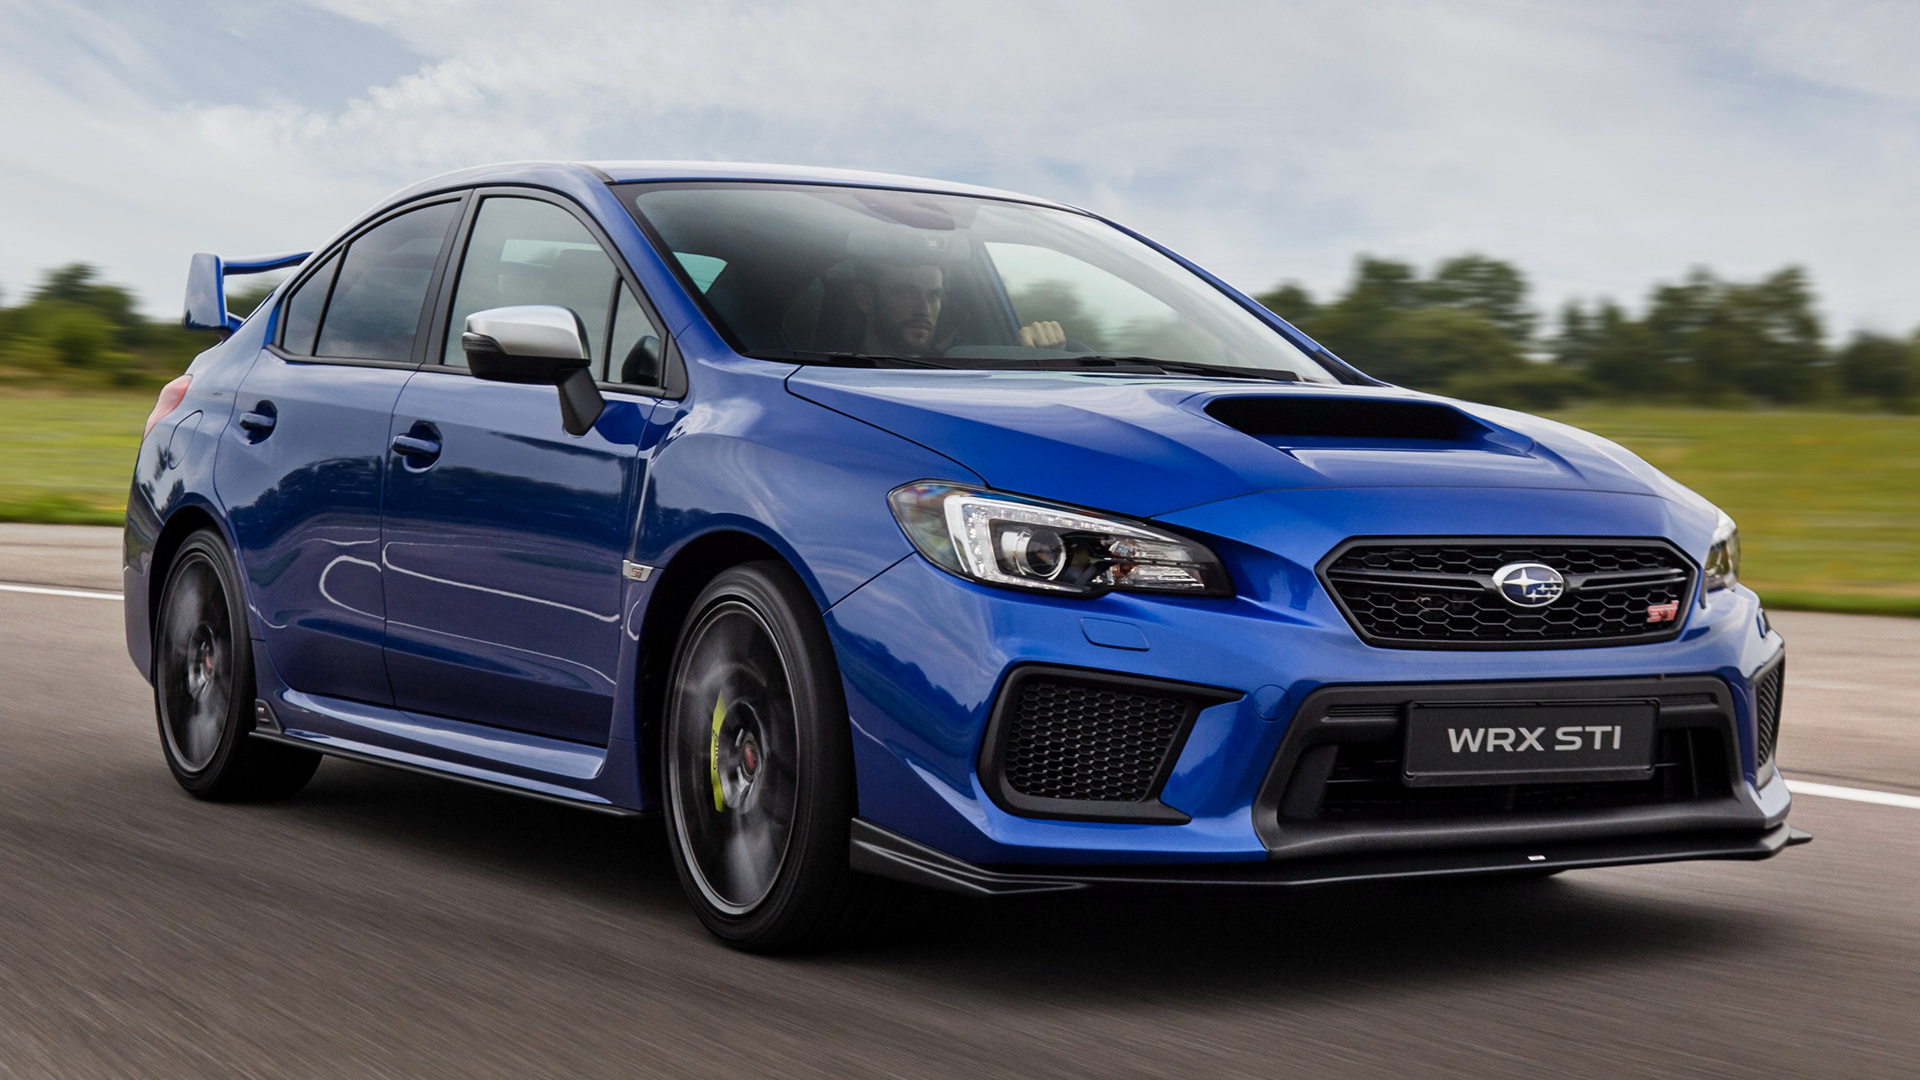 2017 Subaru Wrx Sti Wallpapers And Hd Images Car Pixel